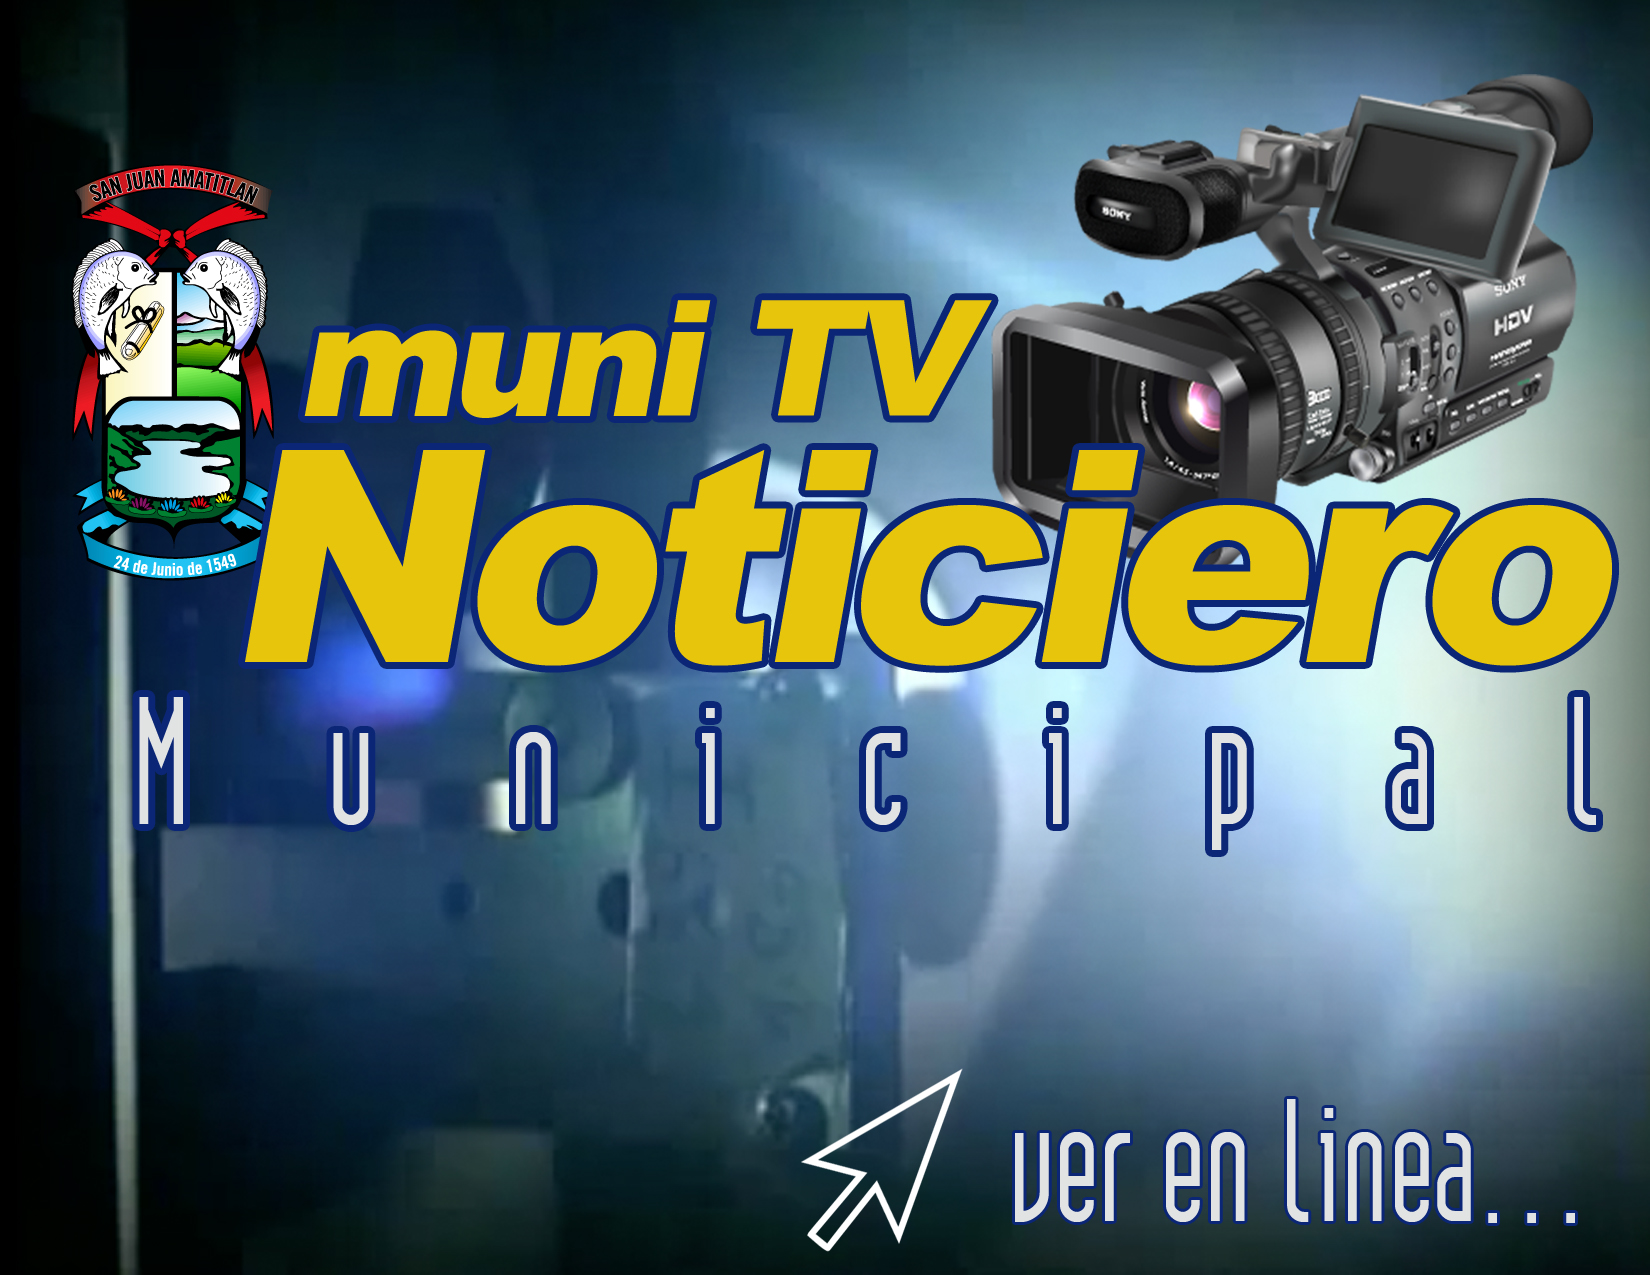 noticieromunicipal